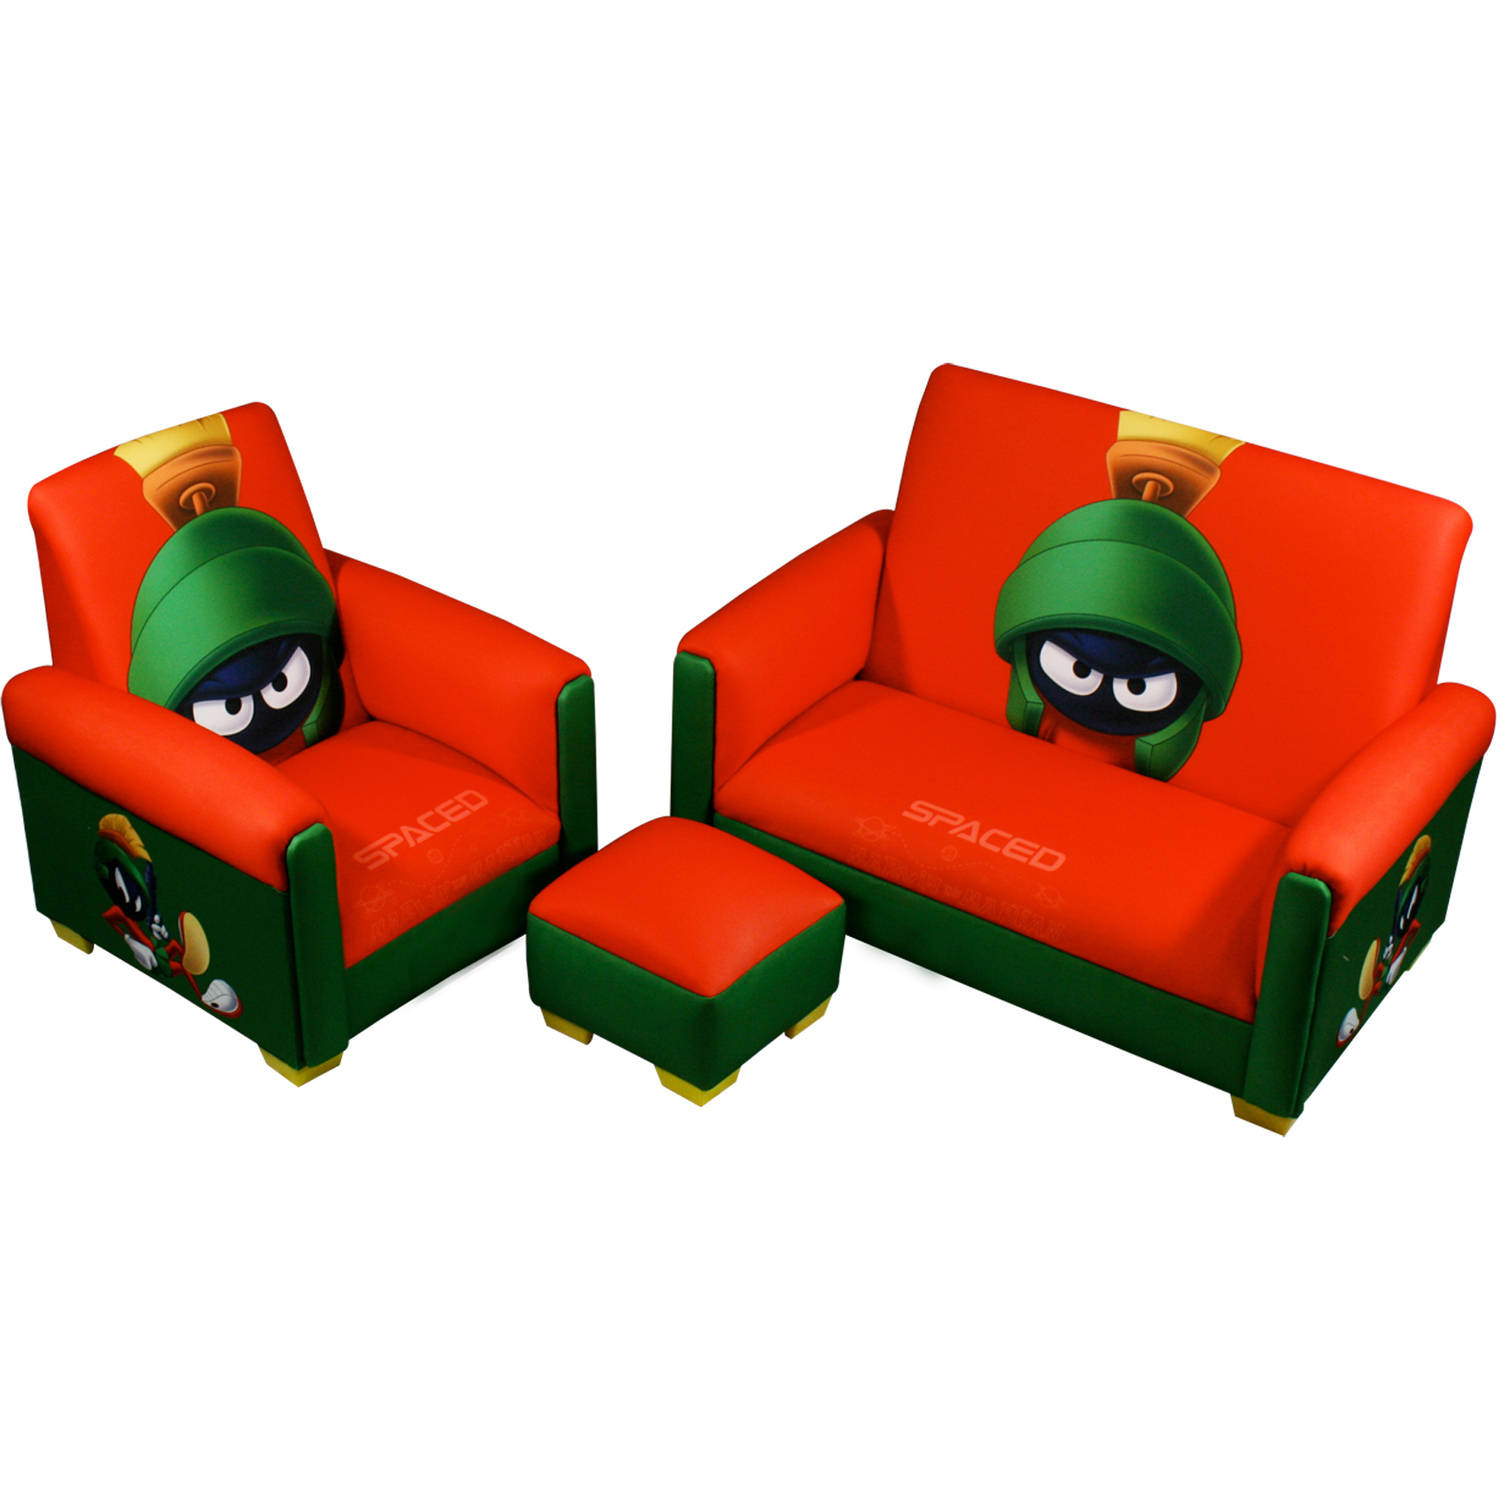 Marvin the Martian Polyester Sofa, Chair and Ottoman